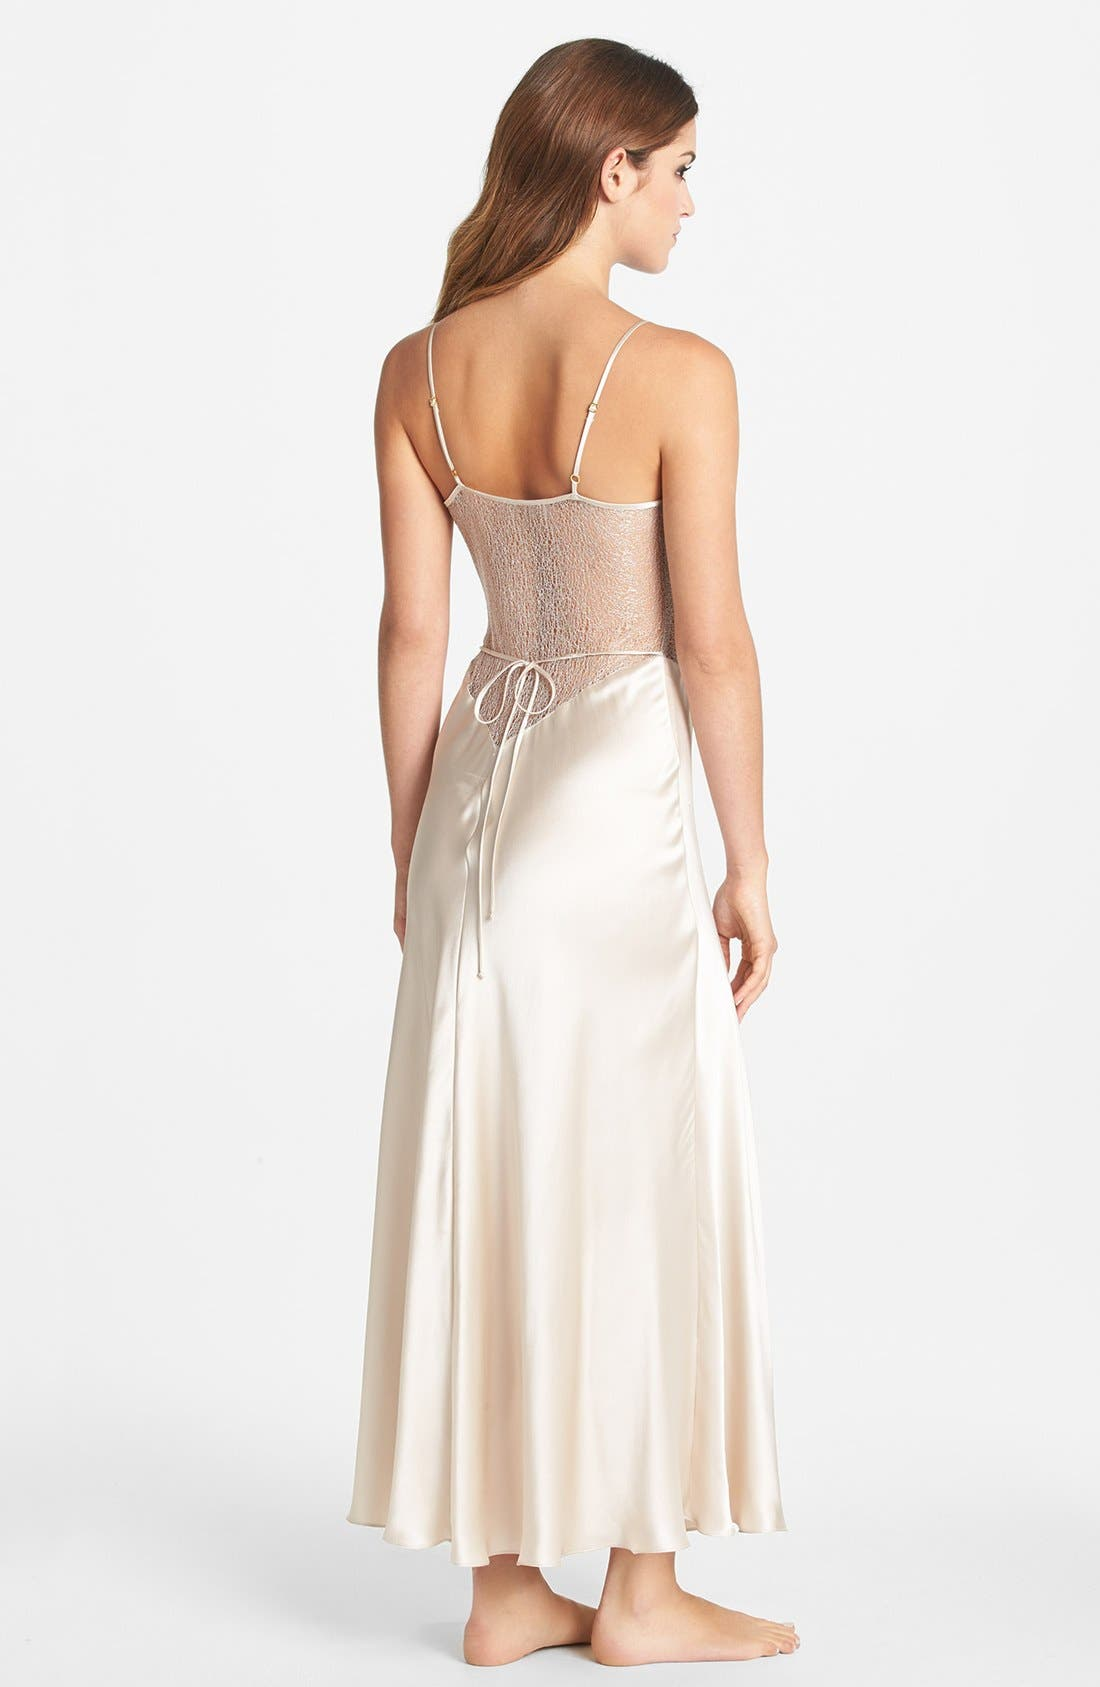 FLORA NIKROOZ, Showstopper Nightgown, Alternate thumbnail 7, color, CHAMPAGNE